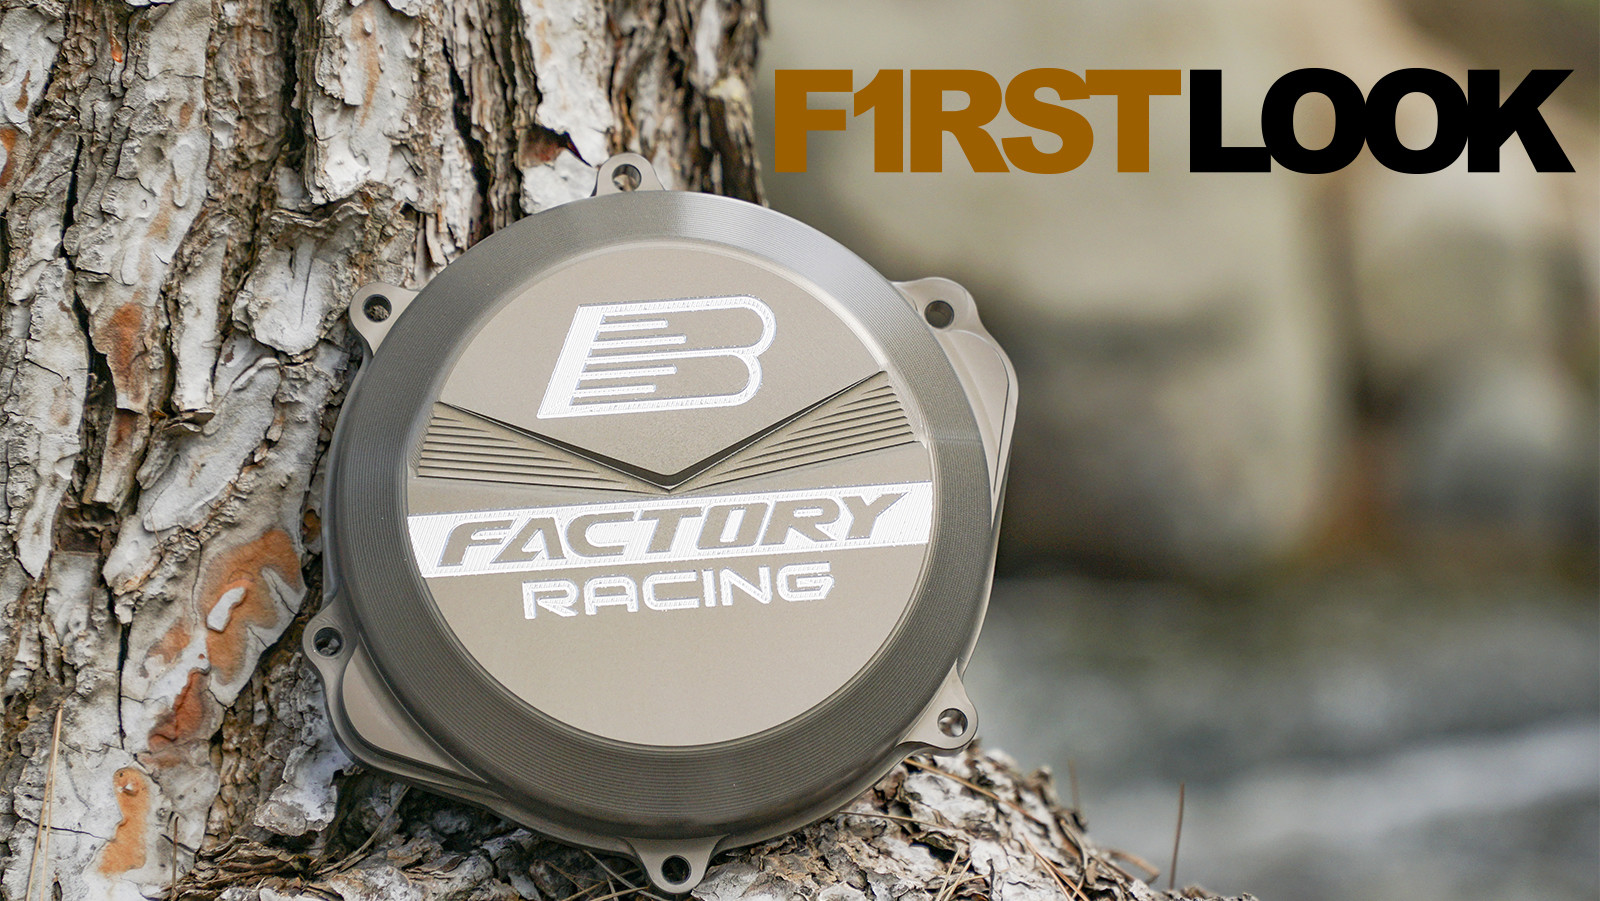 First Look: Boyesen Works Billet Factory Racing Clutch Cover